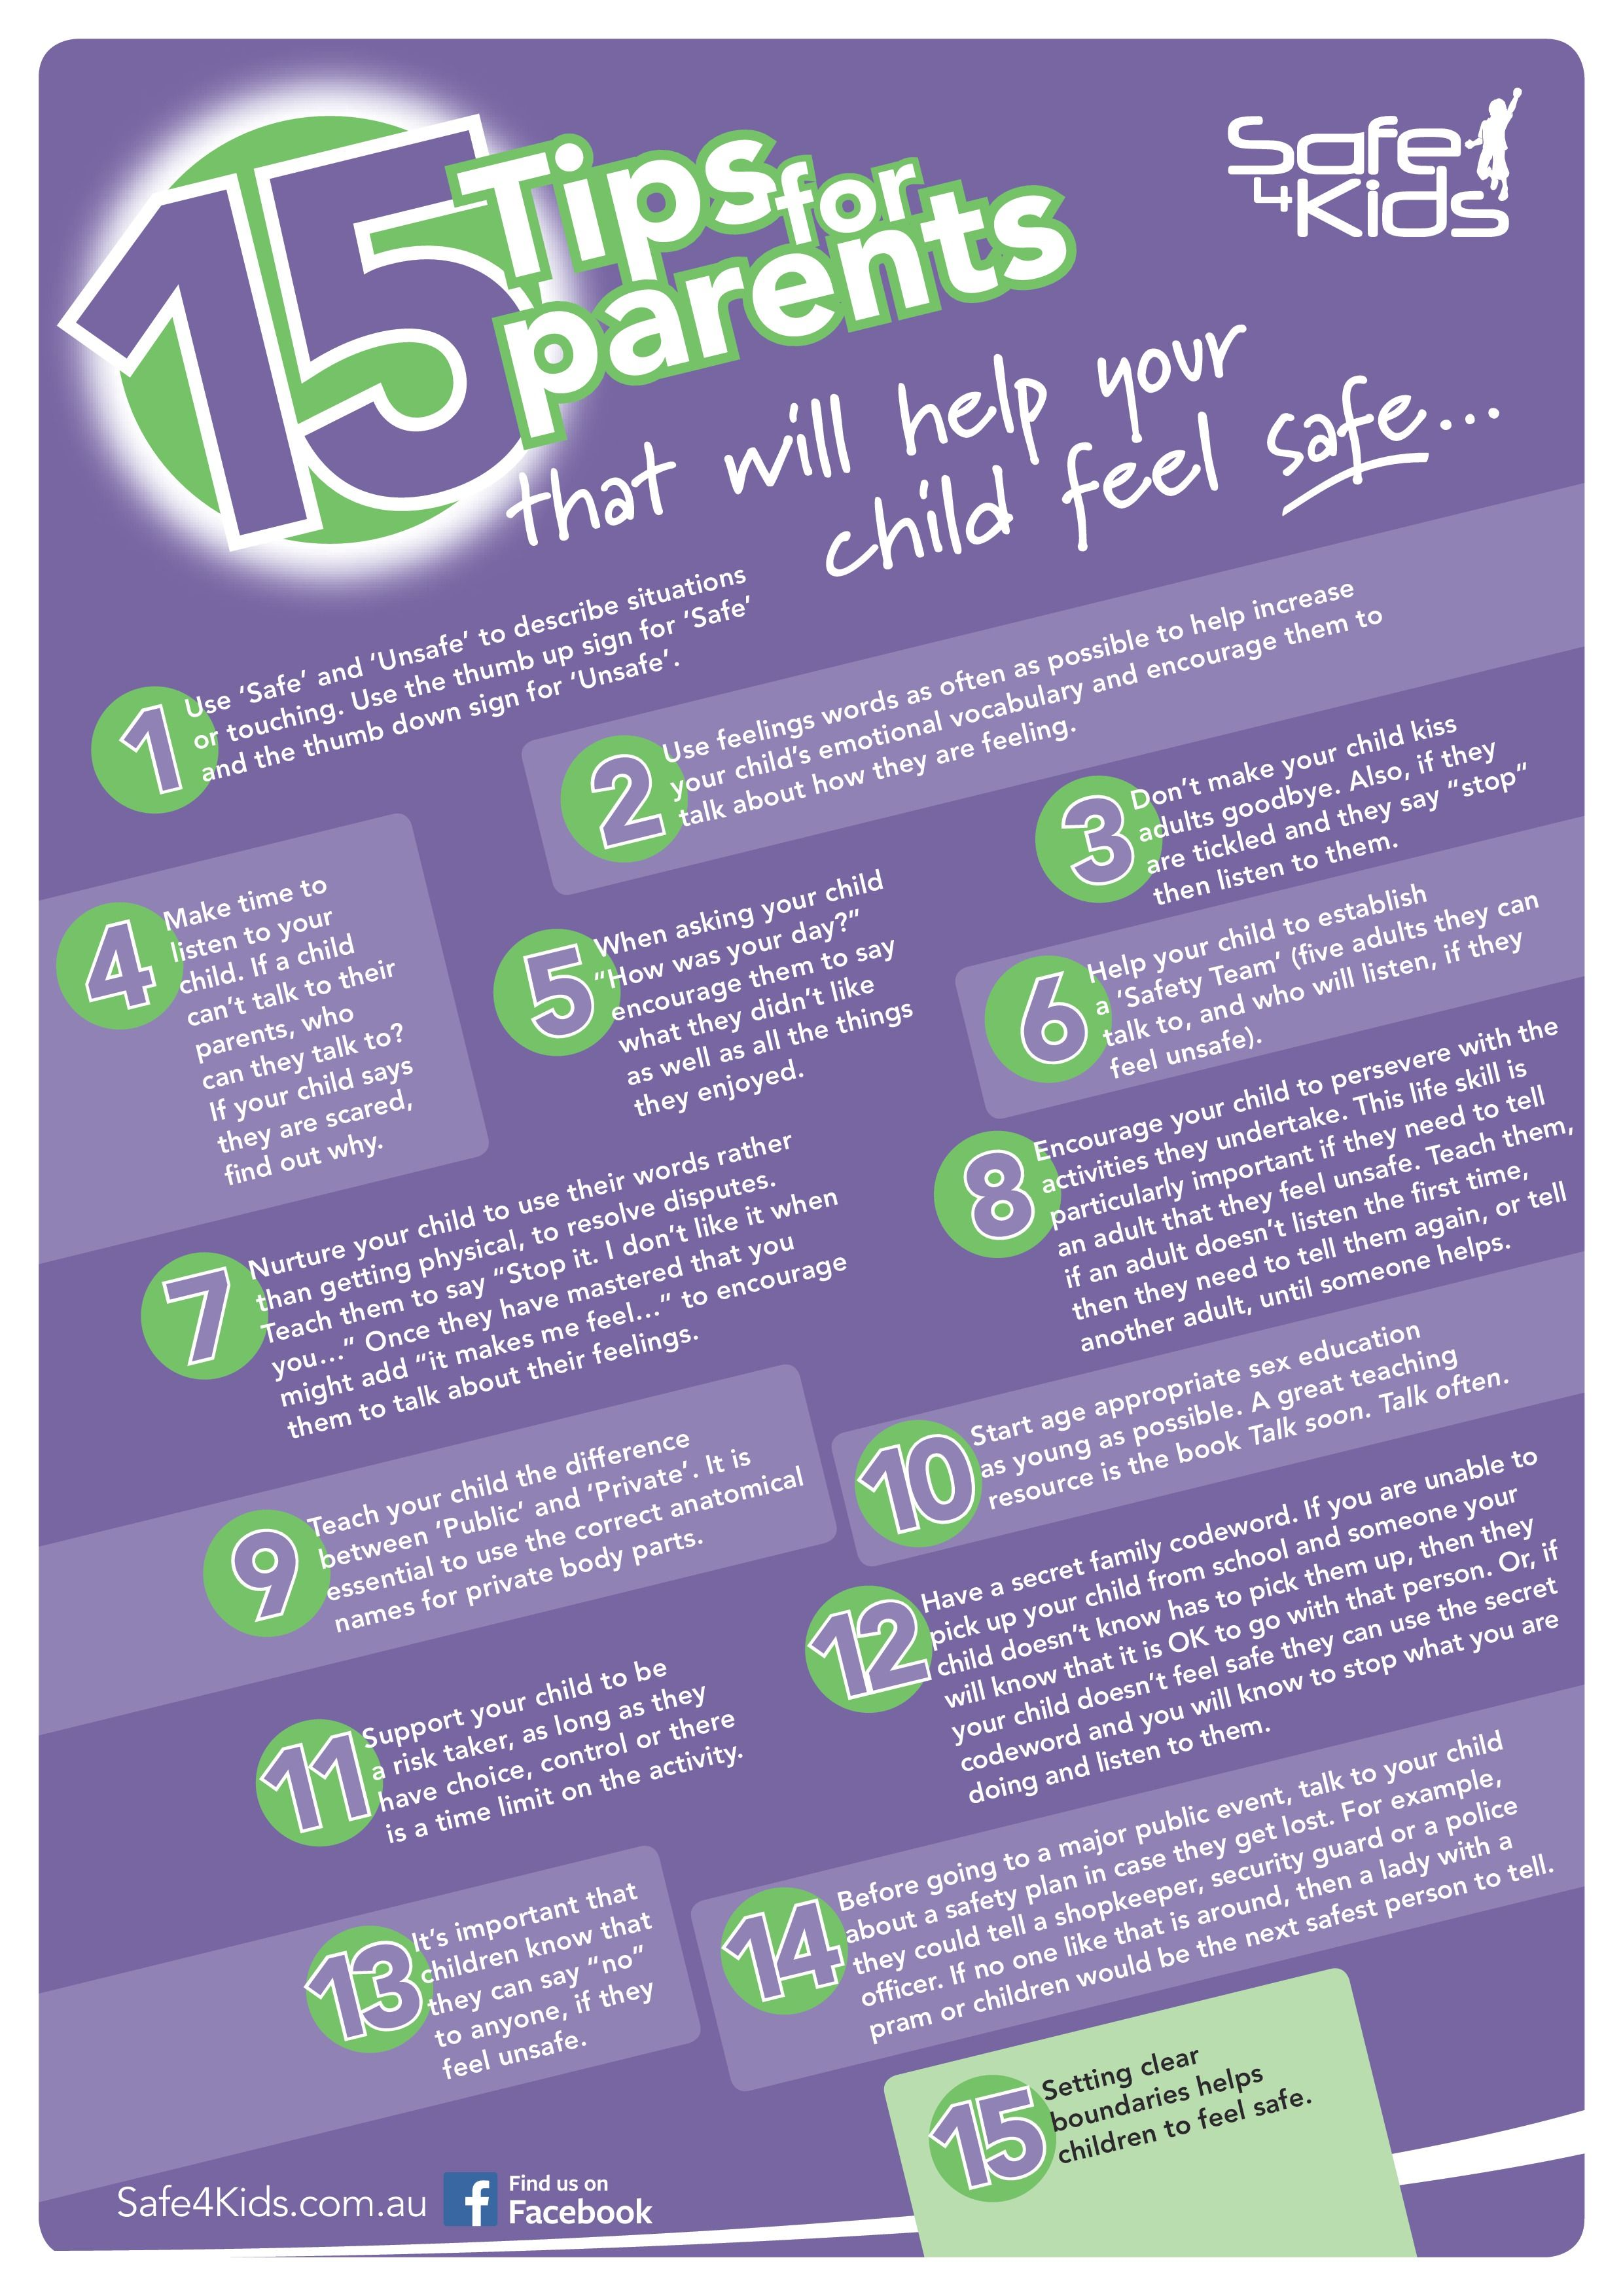 15 Important Tips For Parents To Help Keep Their Children Safe New Parent Advice Child Protection Parenting Toddlers Boys